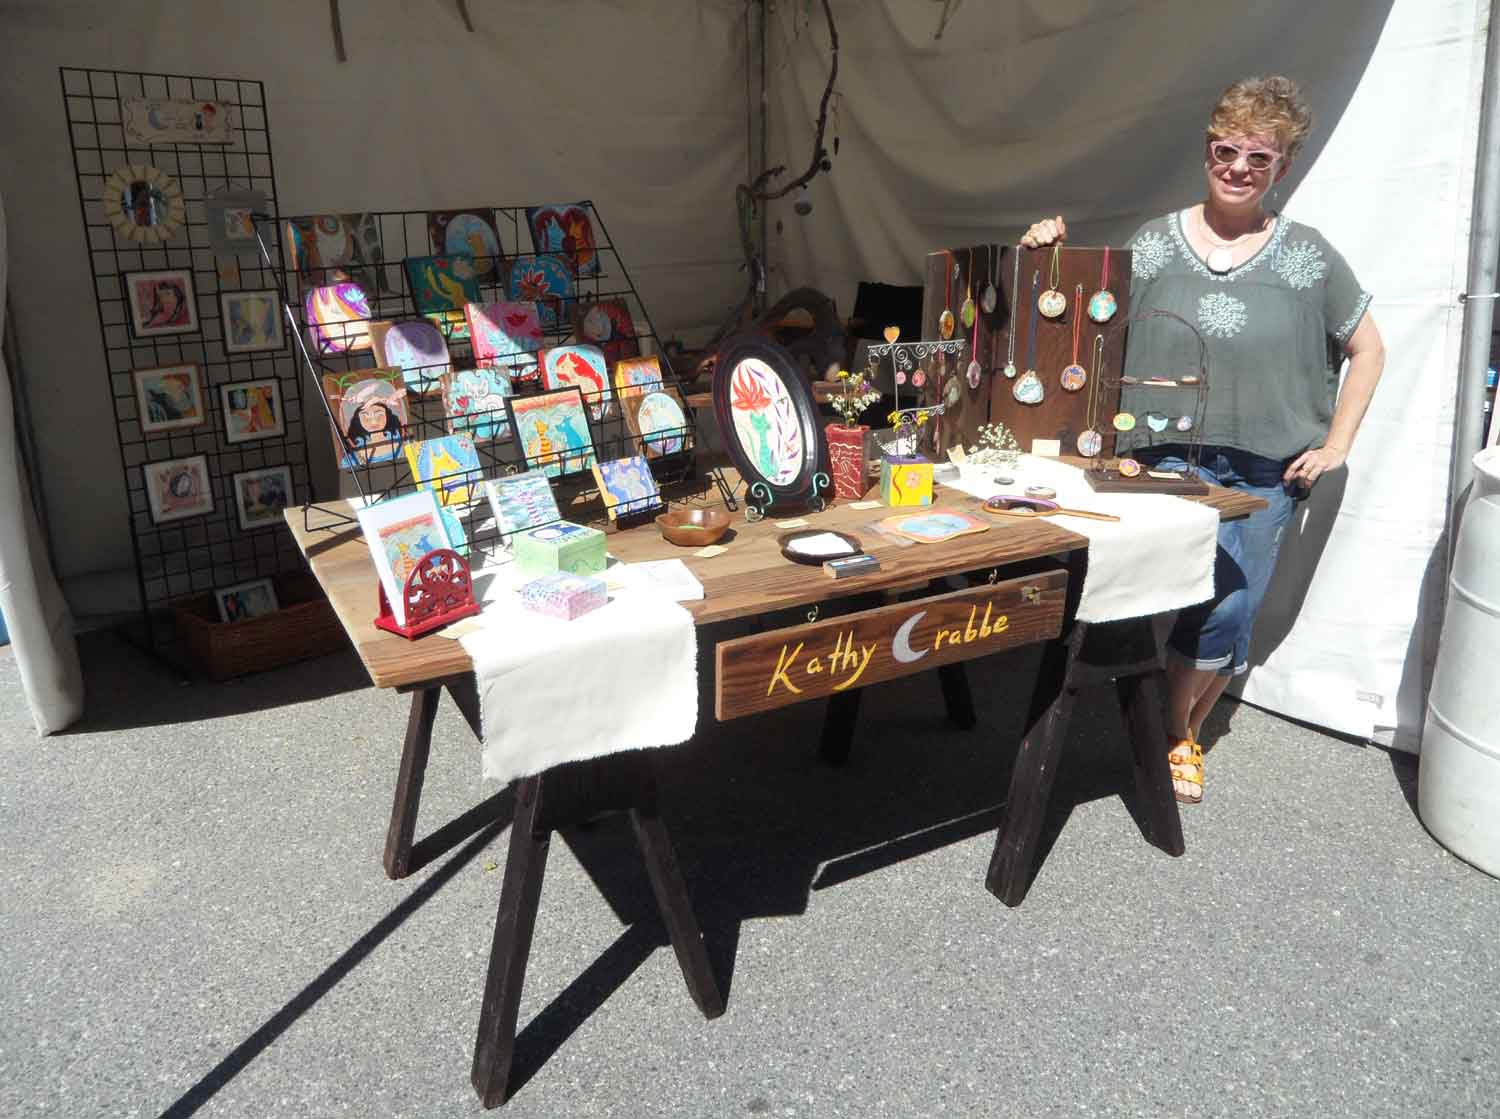 Temecula Art Fair, June 8-9, 2019 (Kathy Crabbe)